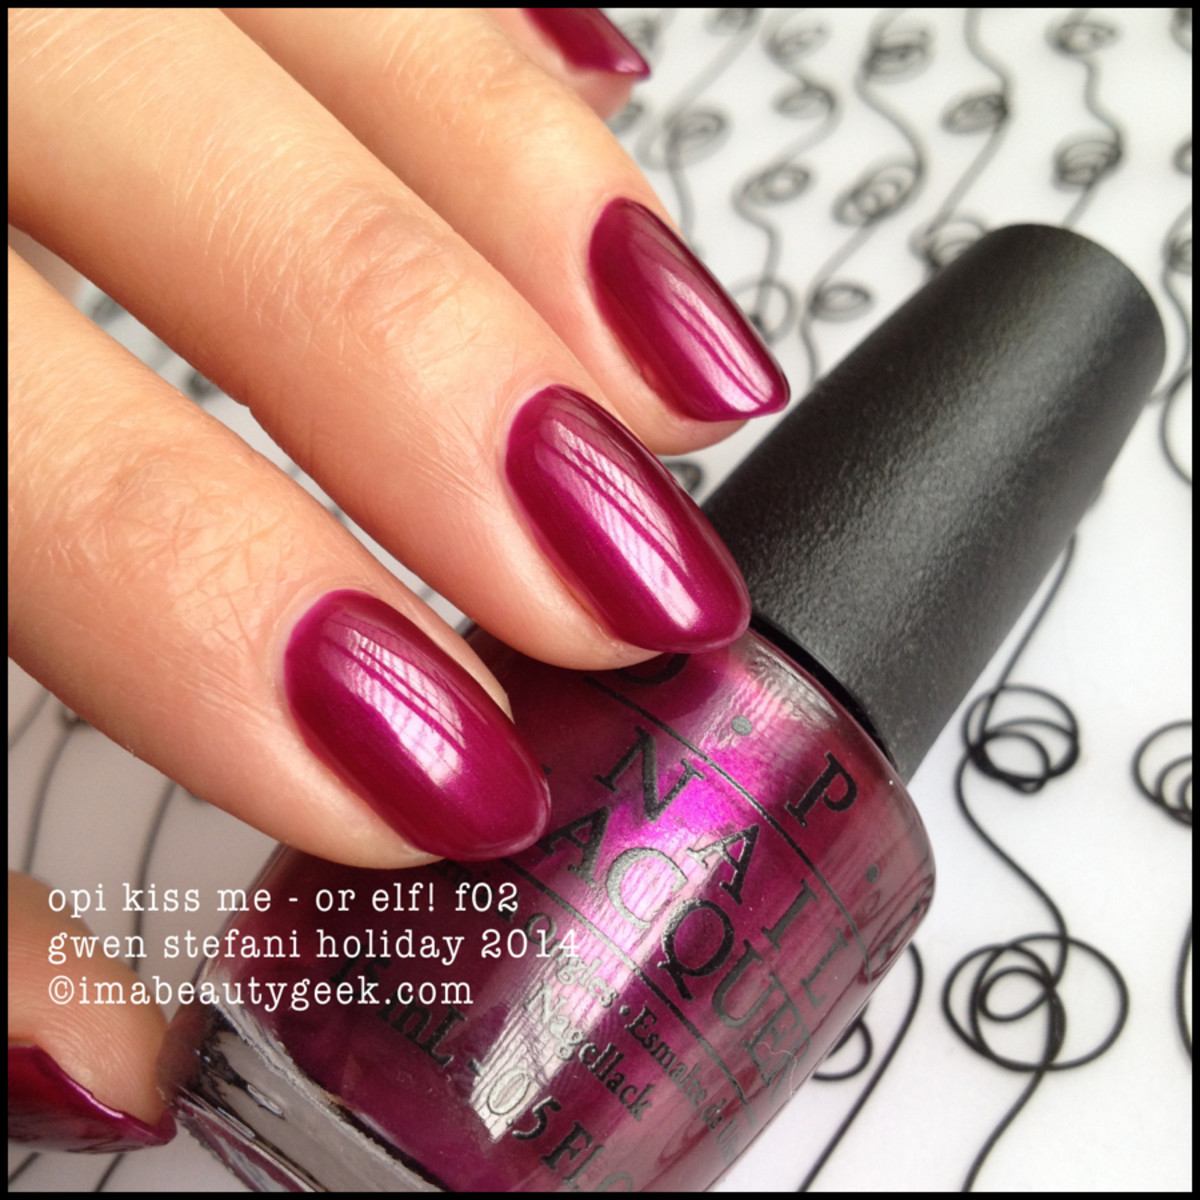 OPI Kiss Me or Elf Gwen Stefani Holiday 2014